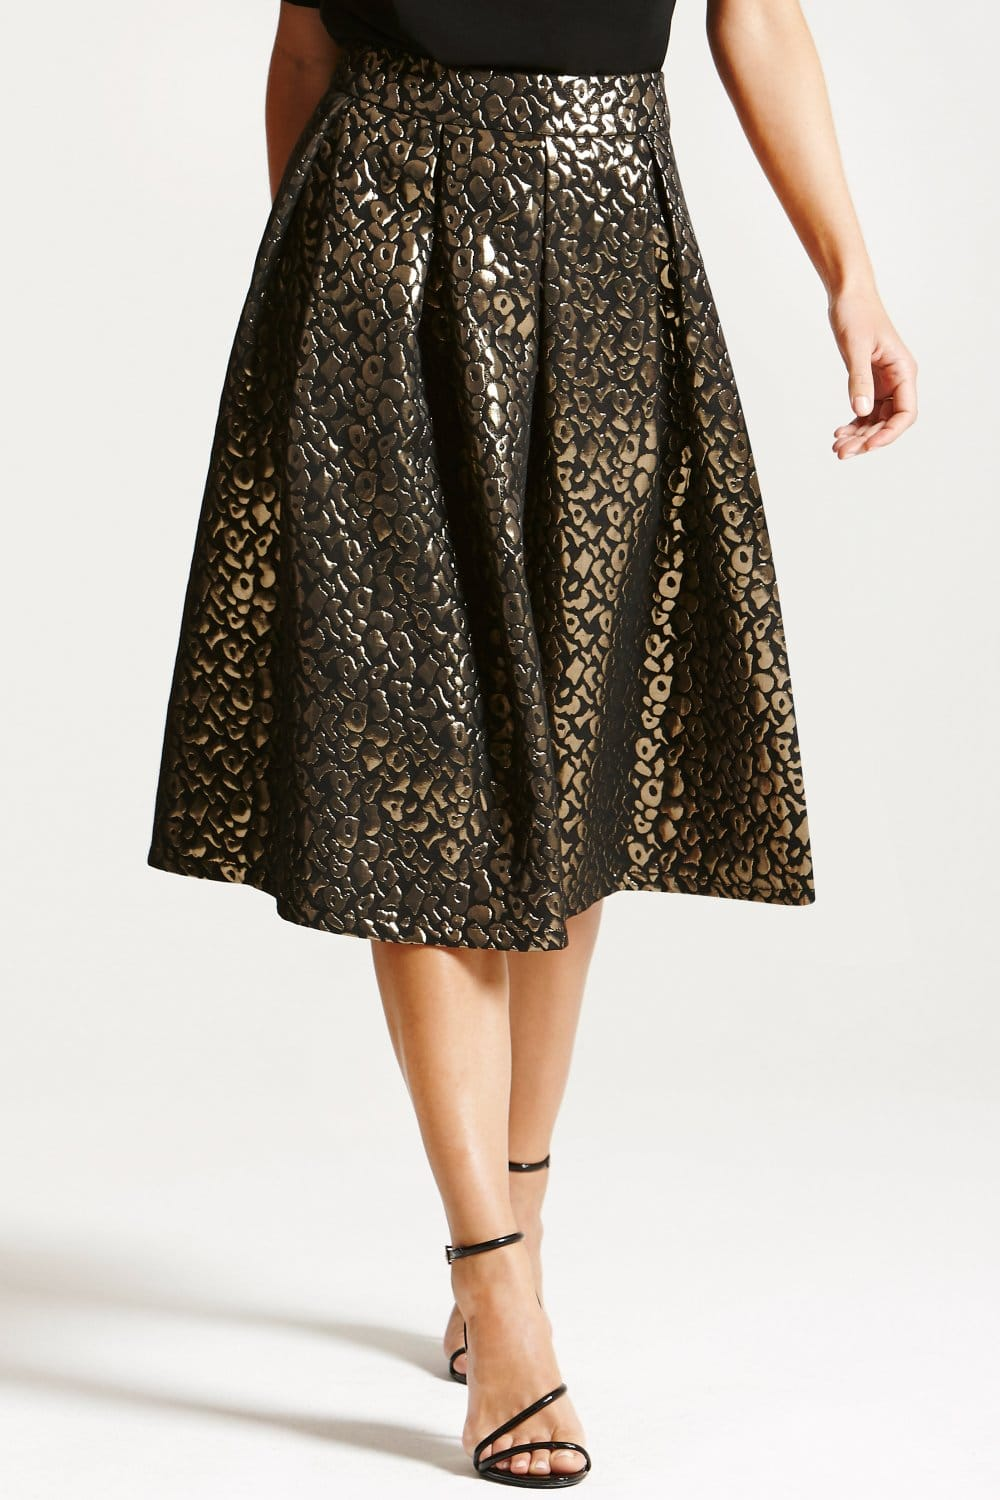 Paper Dolls Metallic Leopard Print A Line Skirt - Paper Dolls from ...